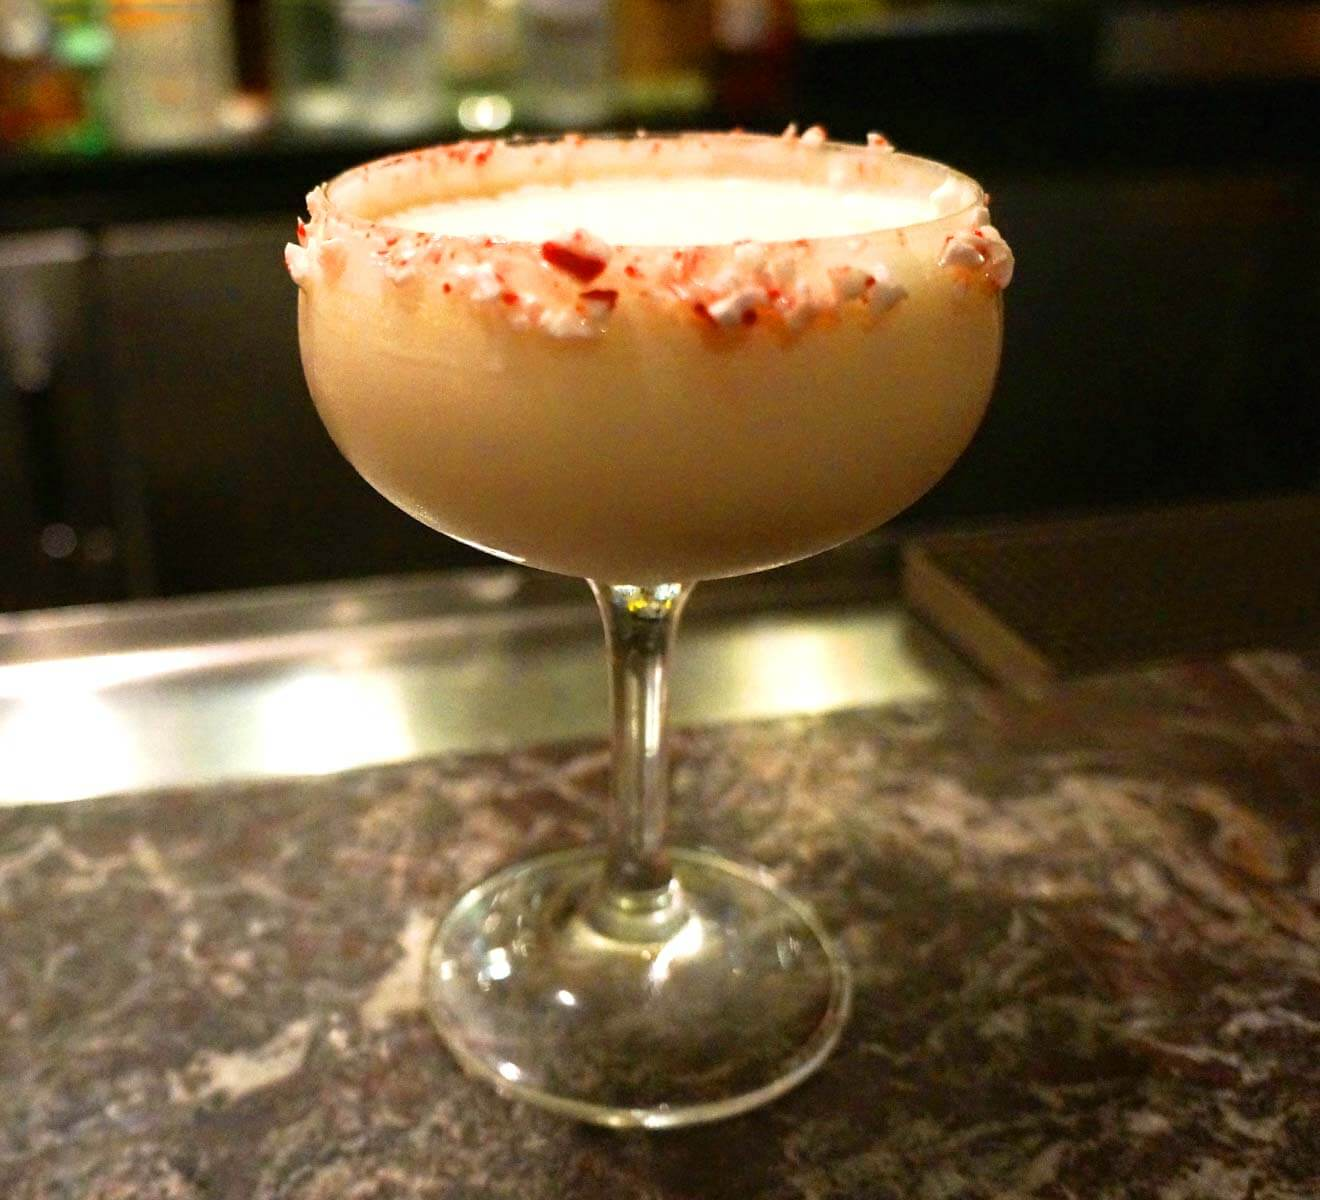 Chilled Drink of the Week: Peppermint Kiss